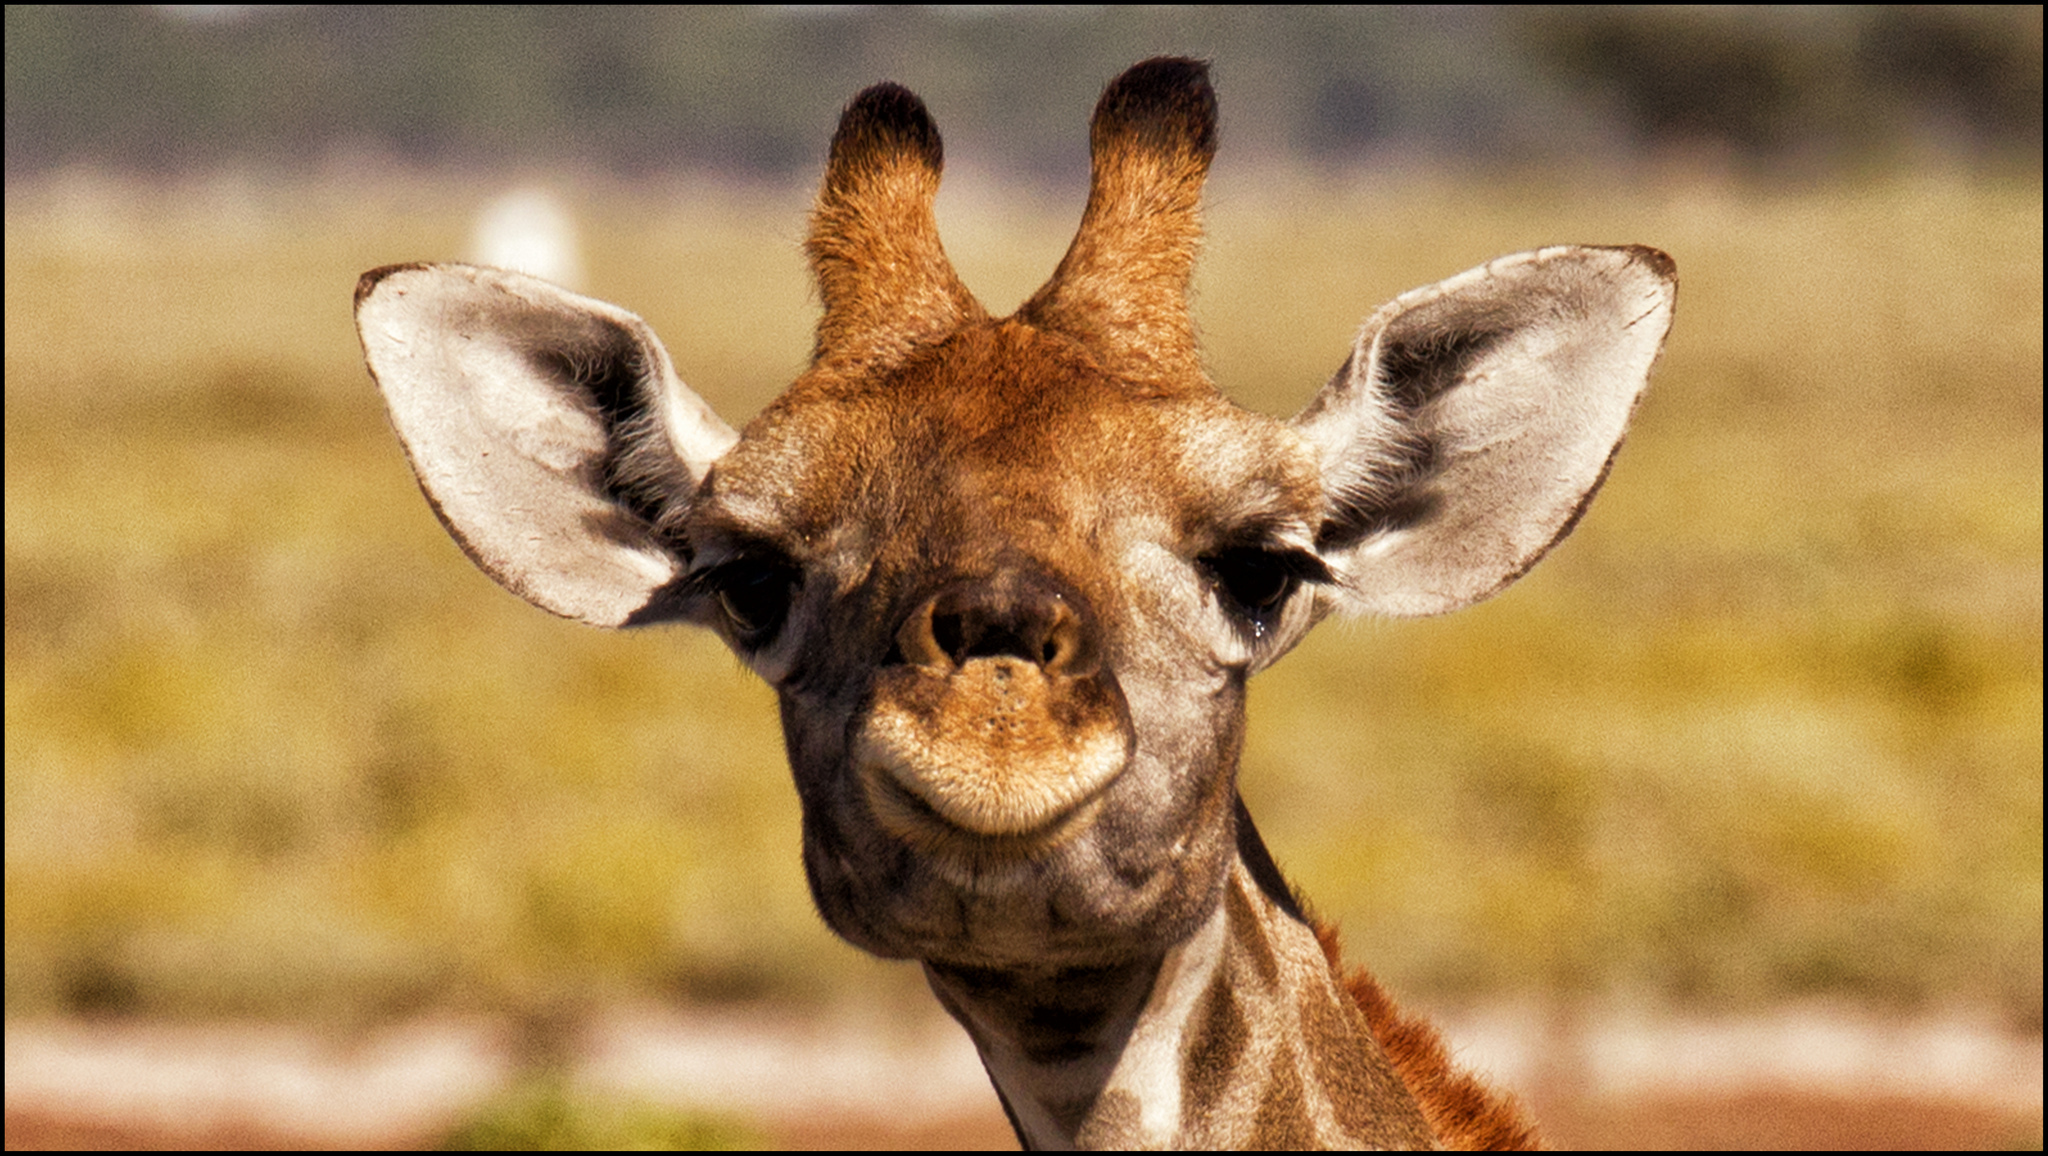 1920x1080 funny giraffe desktop - photo #4